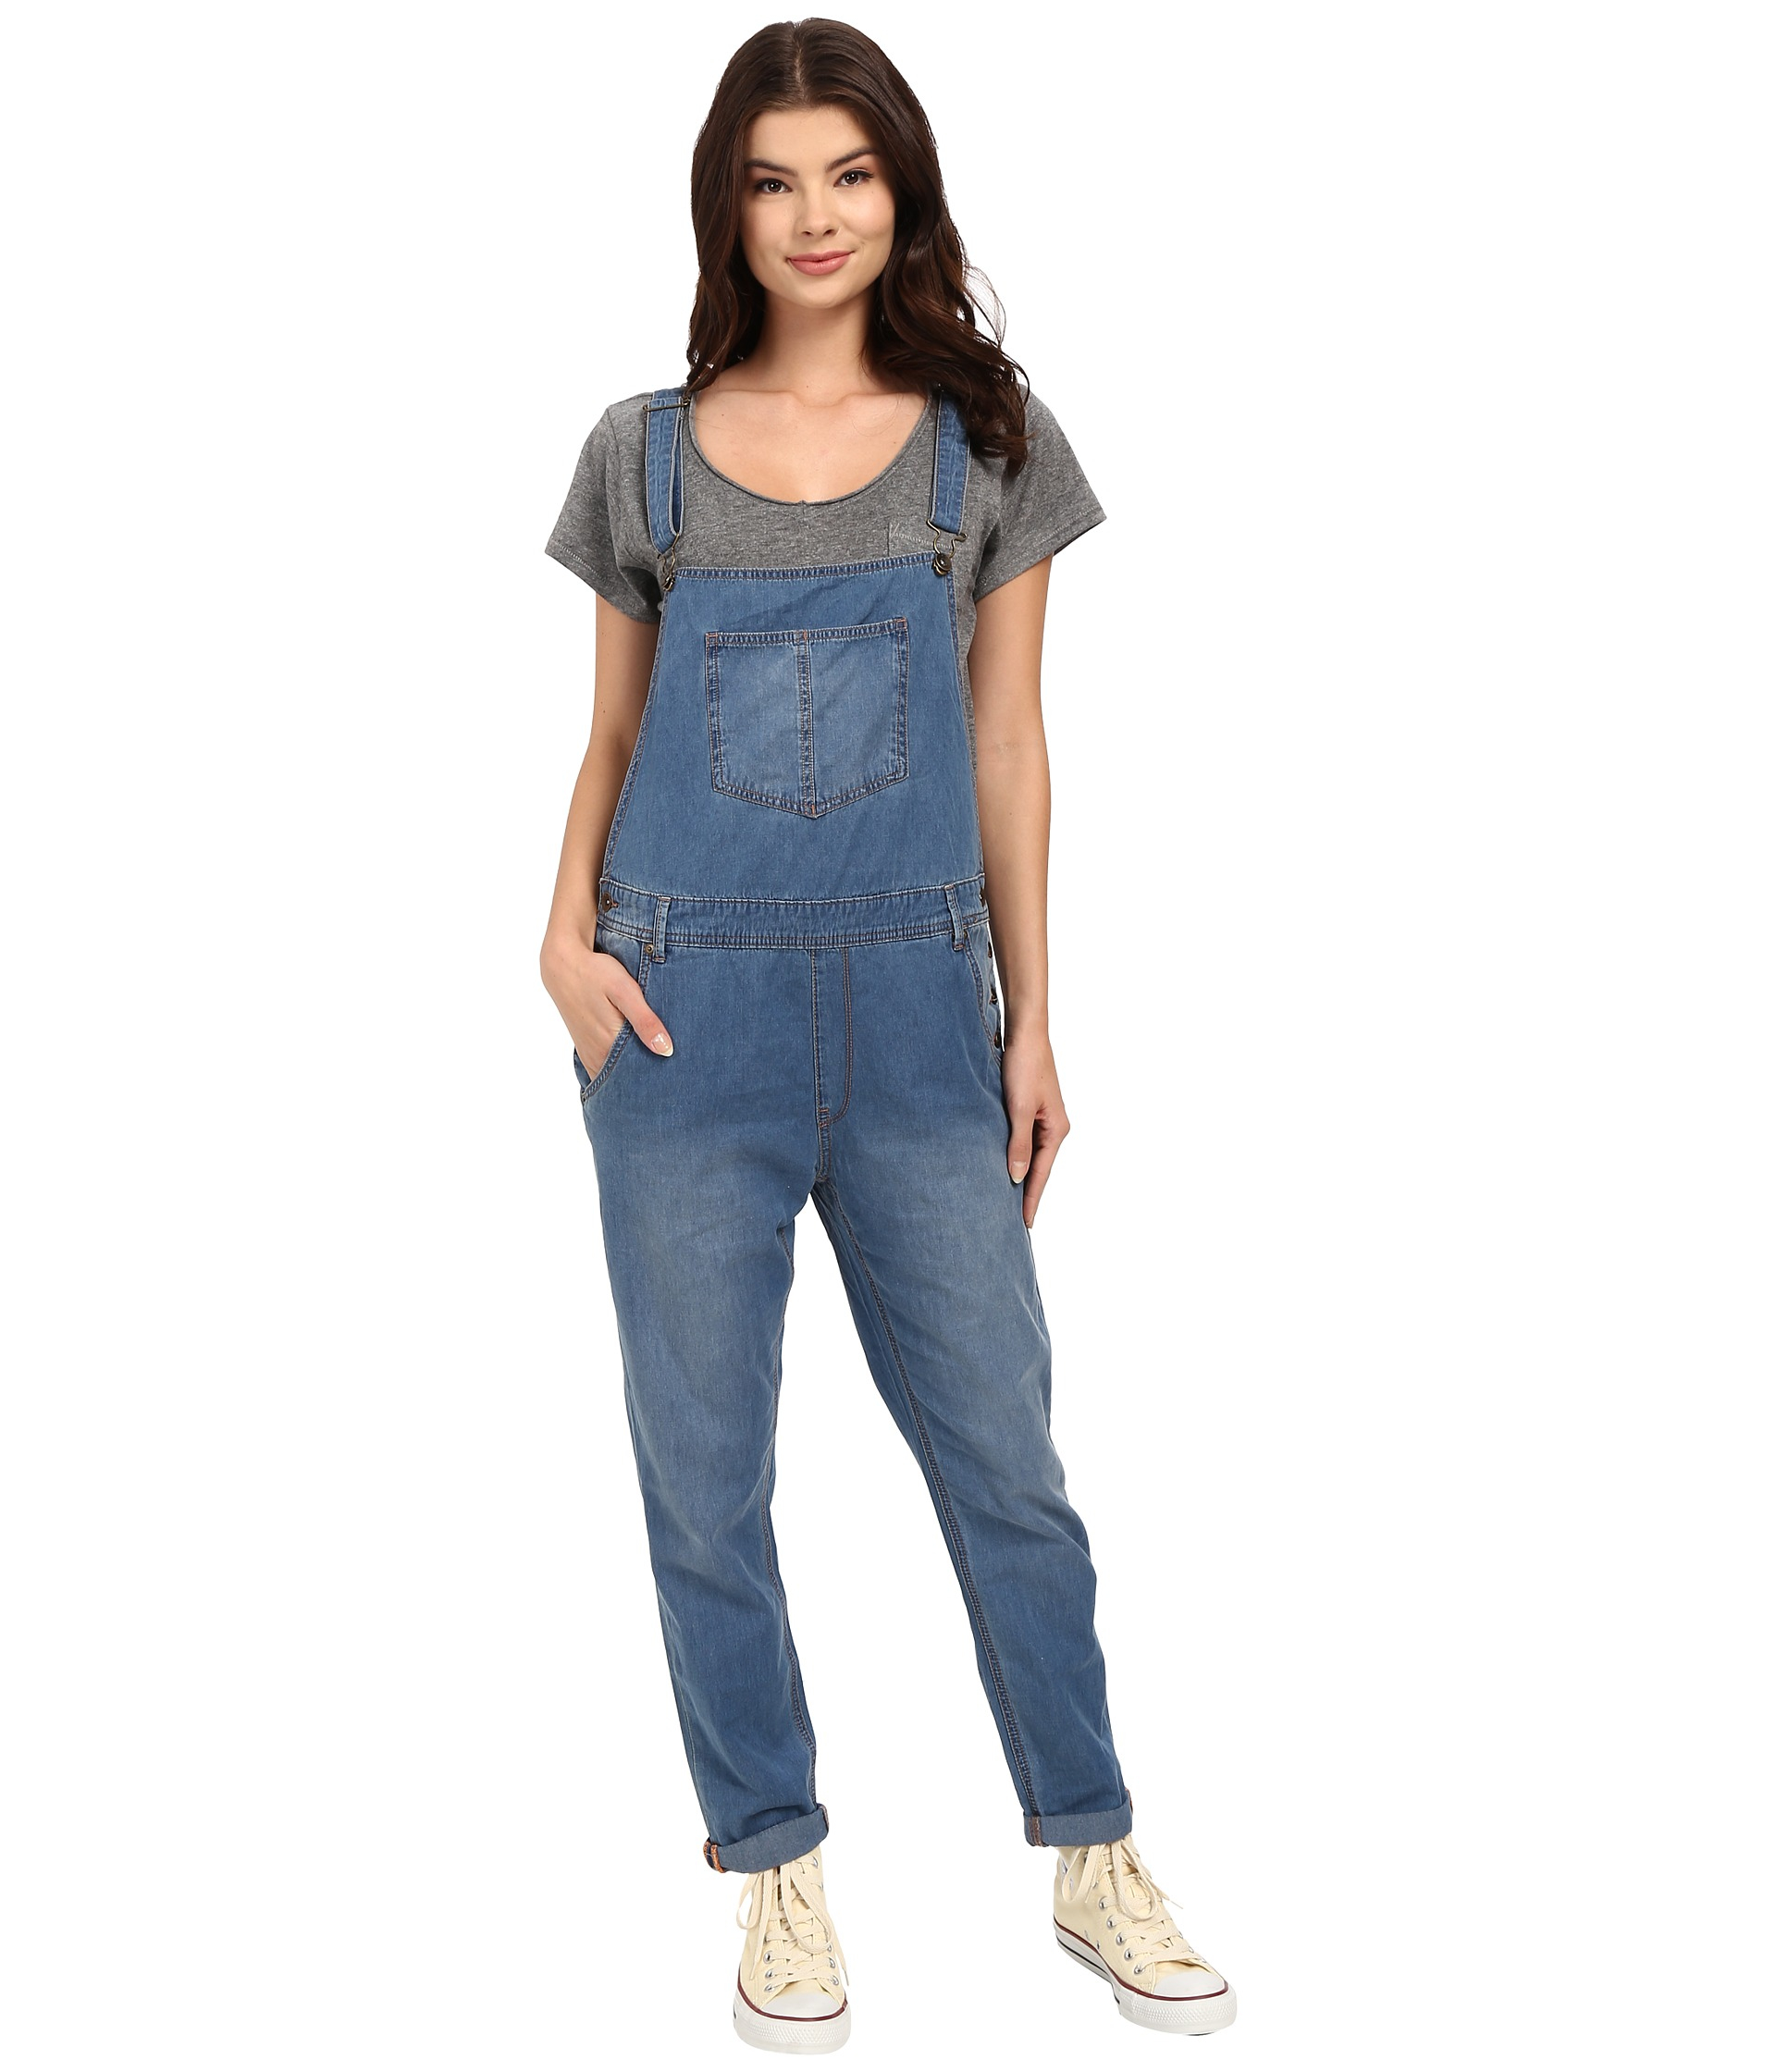 be05b1e36a6 Lyst - Roxy Sea Foam Denim Overalls in Blue